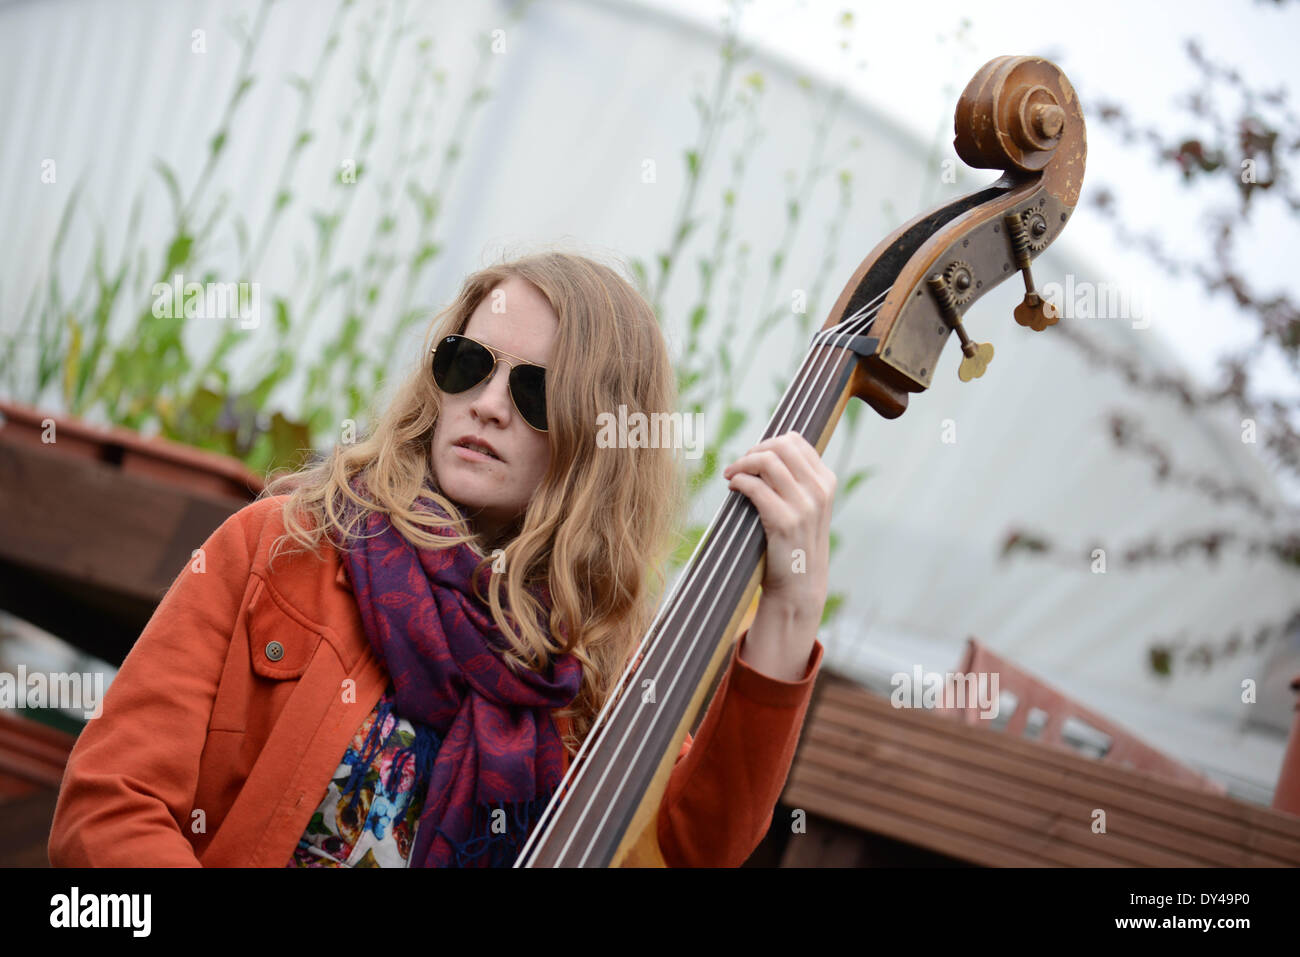 London, UK. 06th Apr, 2014. Musician preforms live at The Oxford and Cambridge 'Goat Race' at the Spitalfields City Farm in London. Credit:  See Li/Alamy Live News - Stock Image